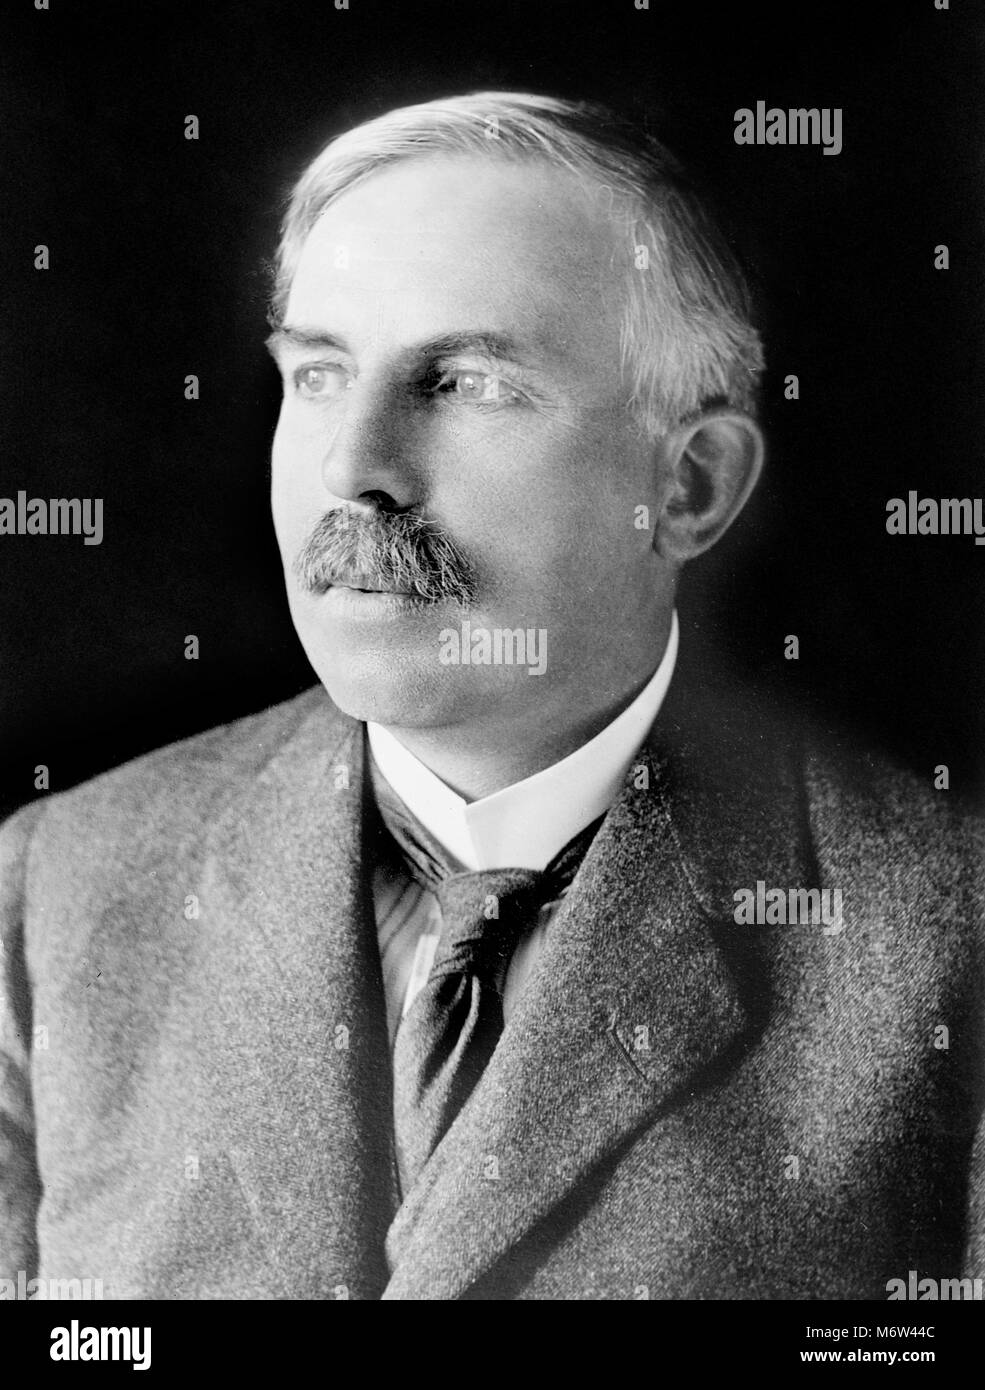 Sir Ernest Rutherford. Portrait of Ernest Rutherford, 1st Baron Rutherford of Nelson (1871-1937). Undated photograph Stock Photo